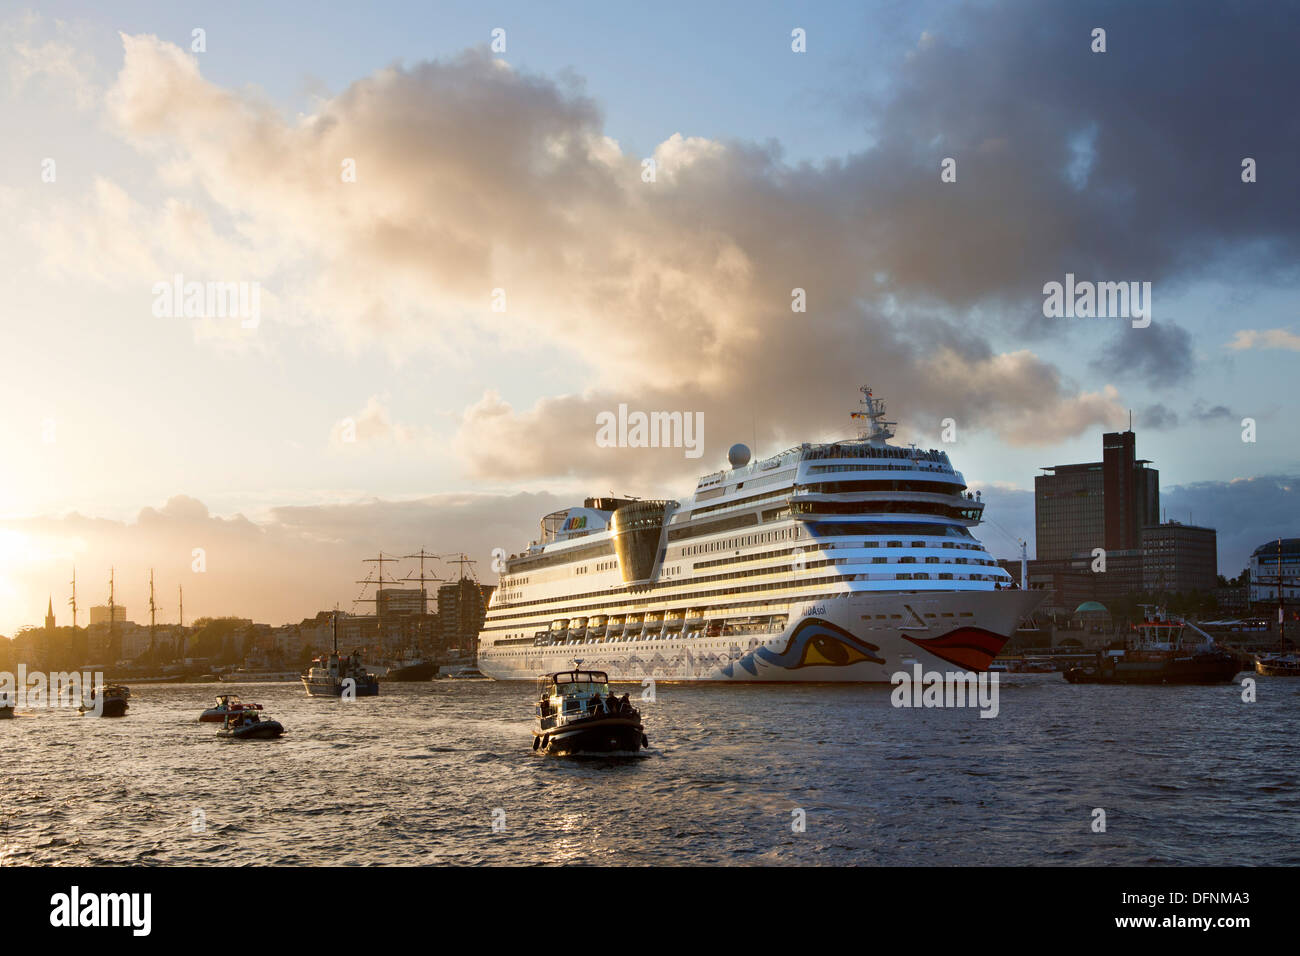 Cruise ship AIDAsol entering port in the evening light, Hamburg, Germany, Europe Stock Photo